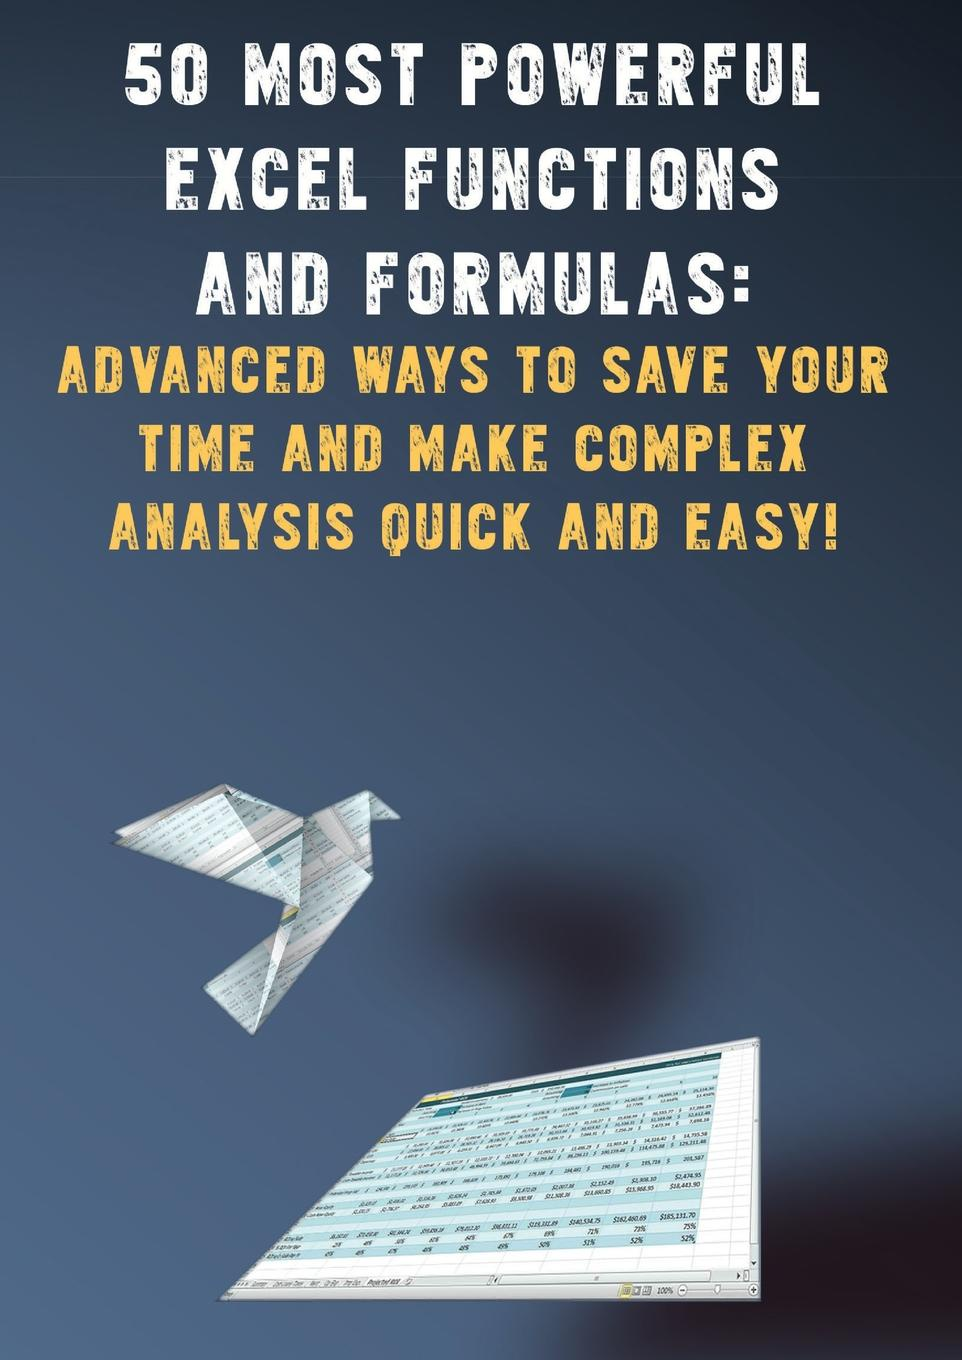 Andrei Besedin 50 Most Powerful Excel Functions and Formulas. : Advanced Ways to Save Your Time and Make Complex Analysis Quick and Easy. hugo blümner karl friedrich hermann heinrich swoboda lehrbuch der griechischen antiquitaten